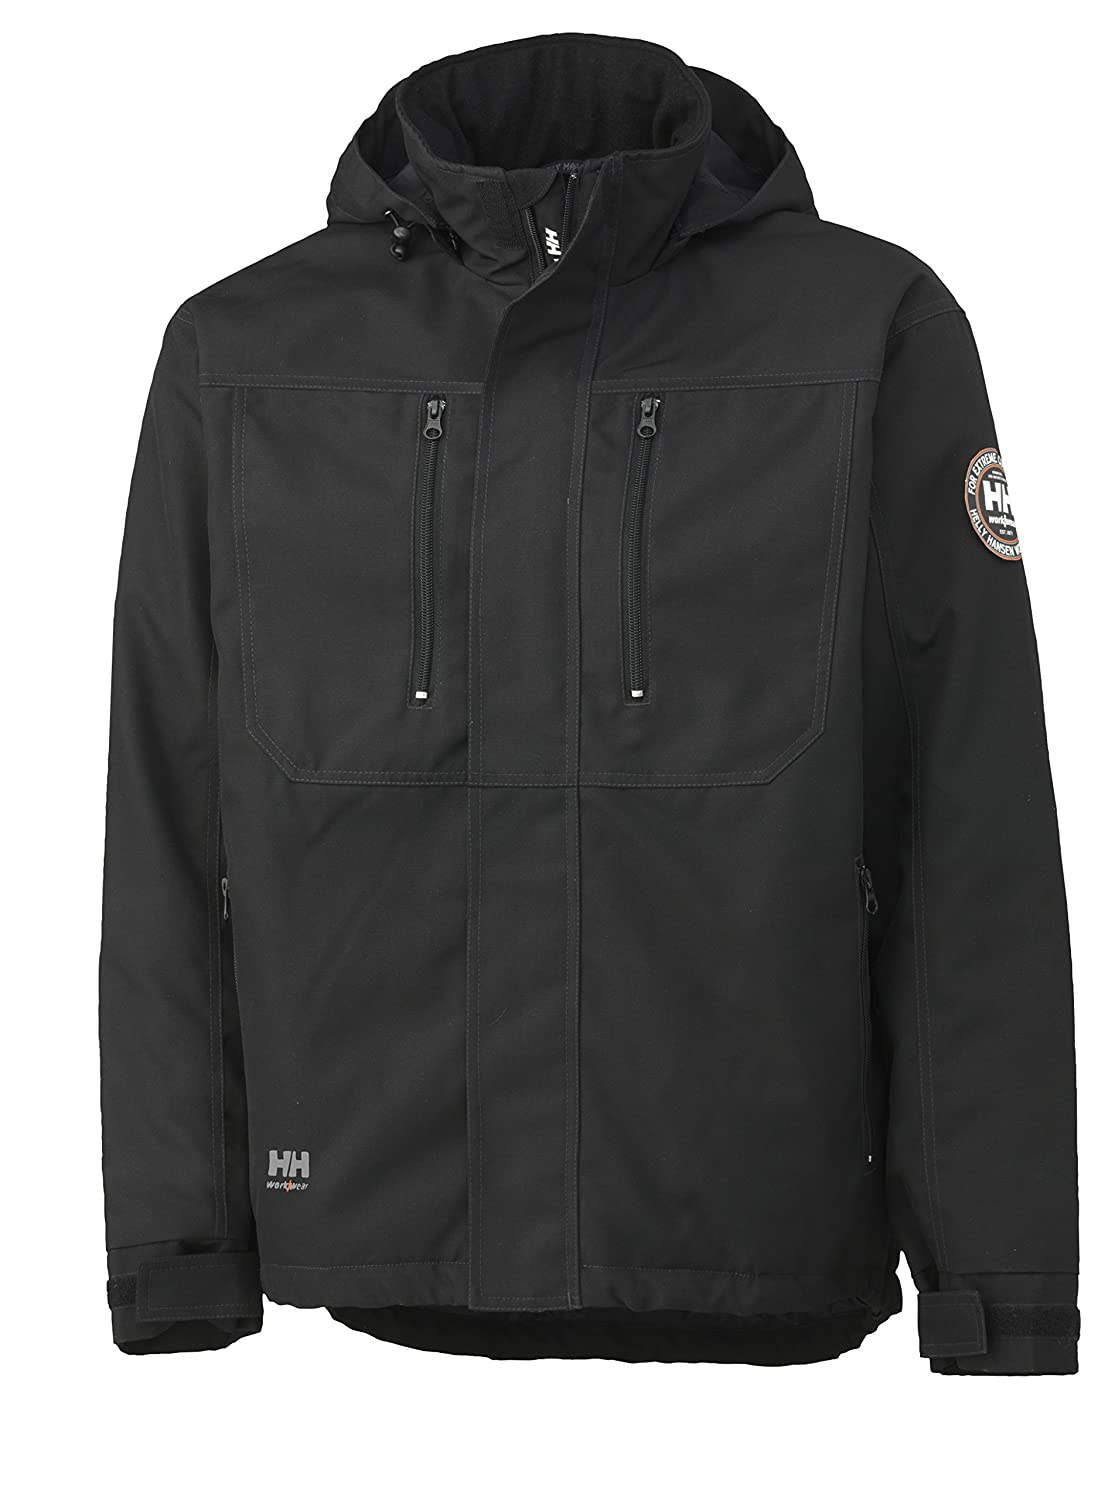 Helly Hansen Workwear Men's Berg Insulated Jacket 76201